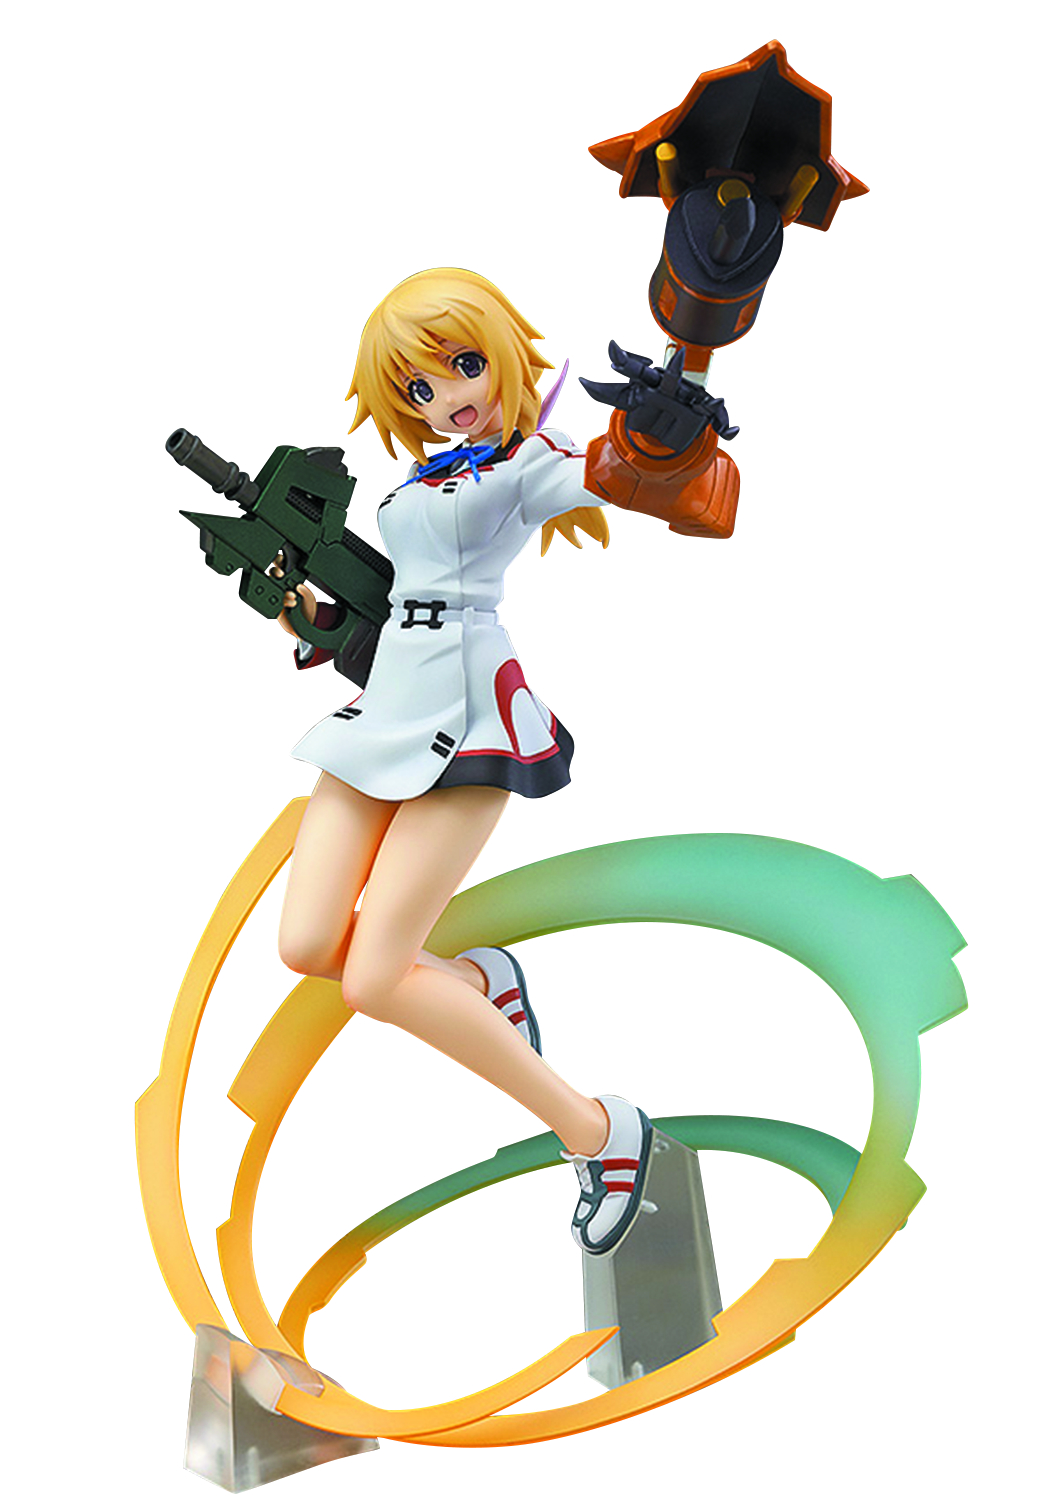 INFINITE STRATOS CHARLOTTE DUNOIS 1/7 PVC FIG